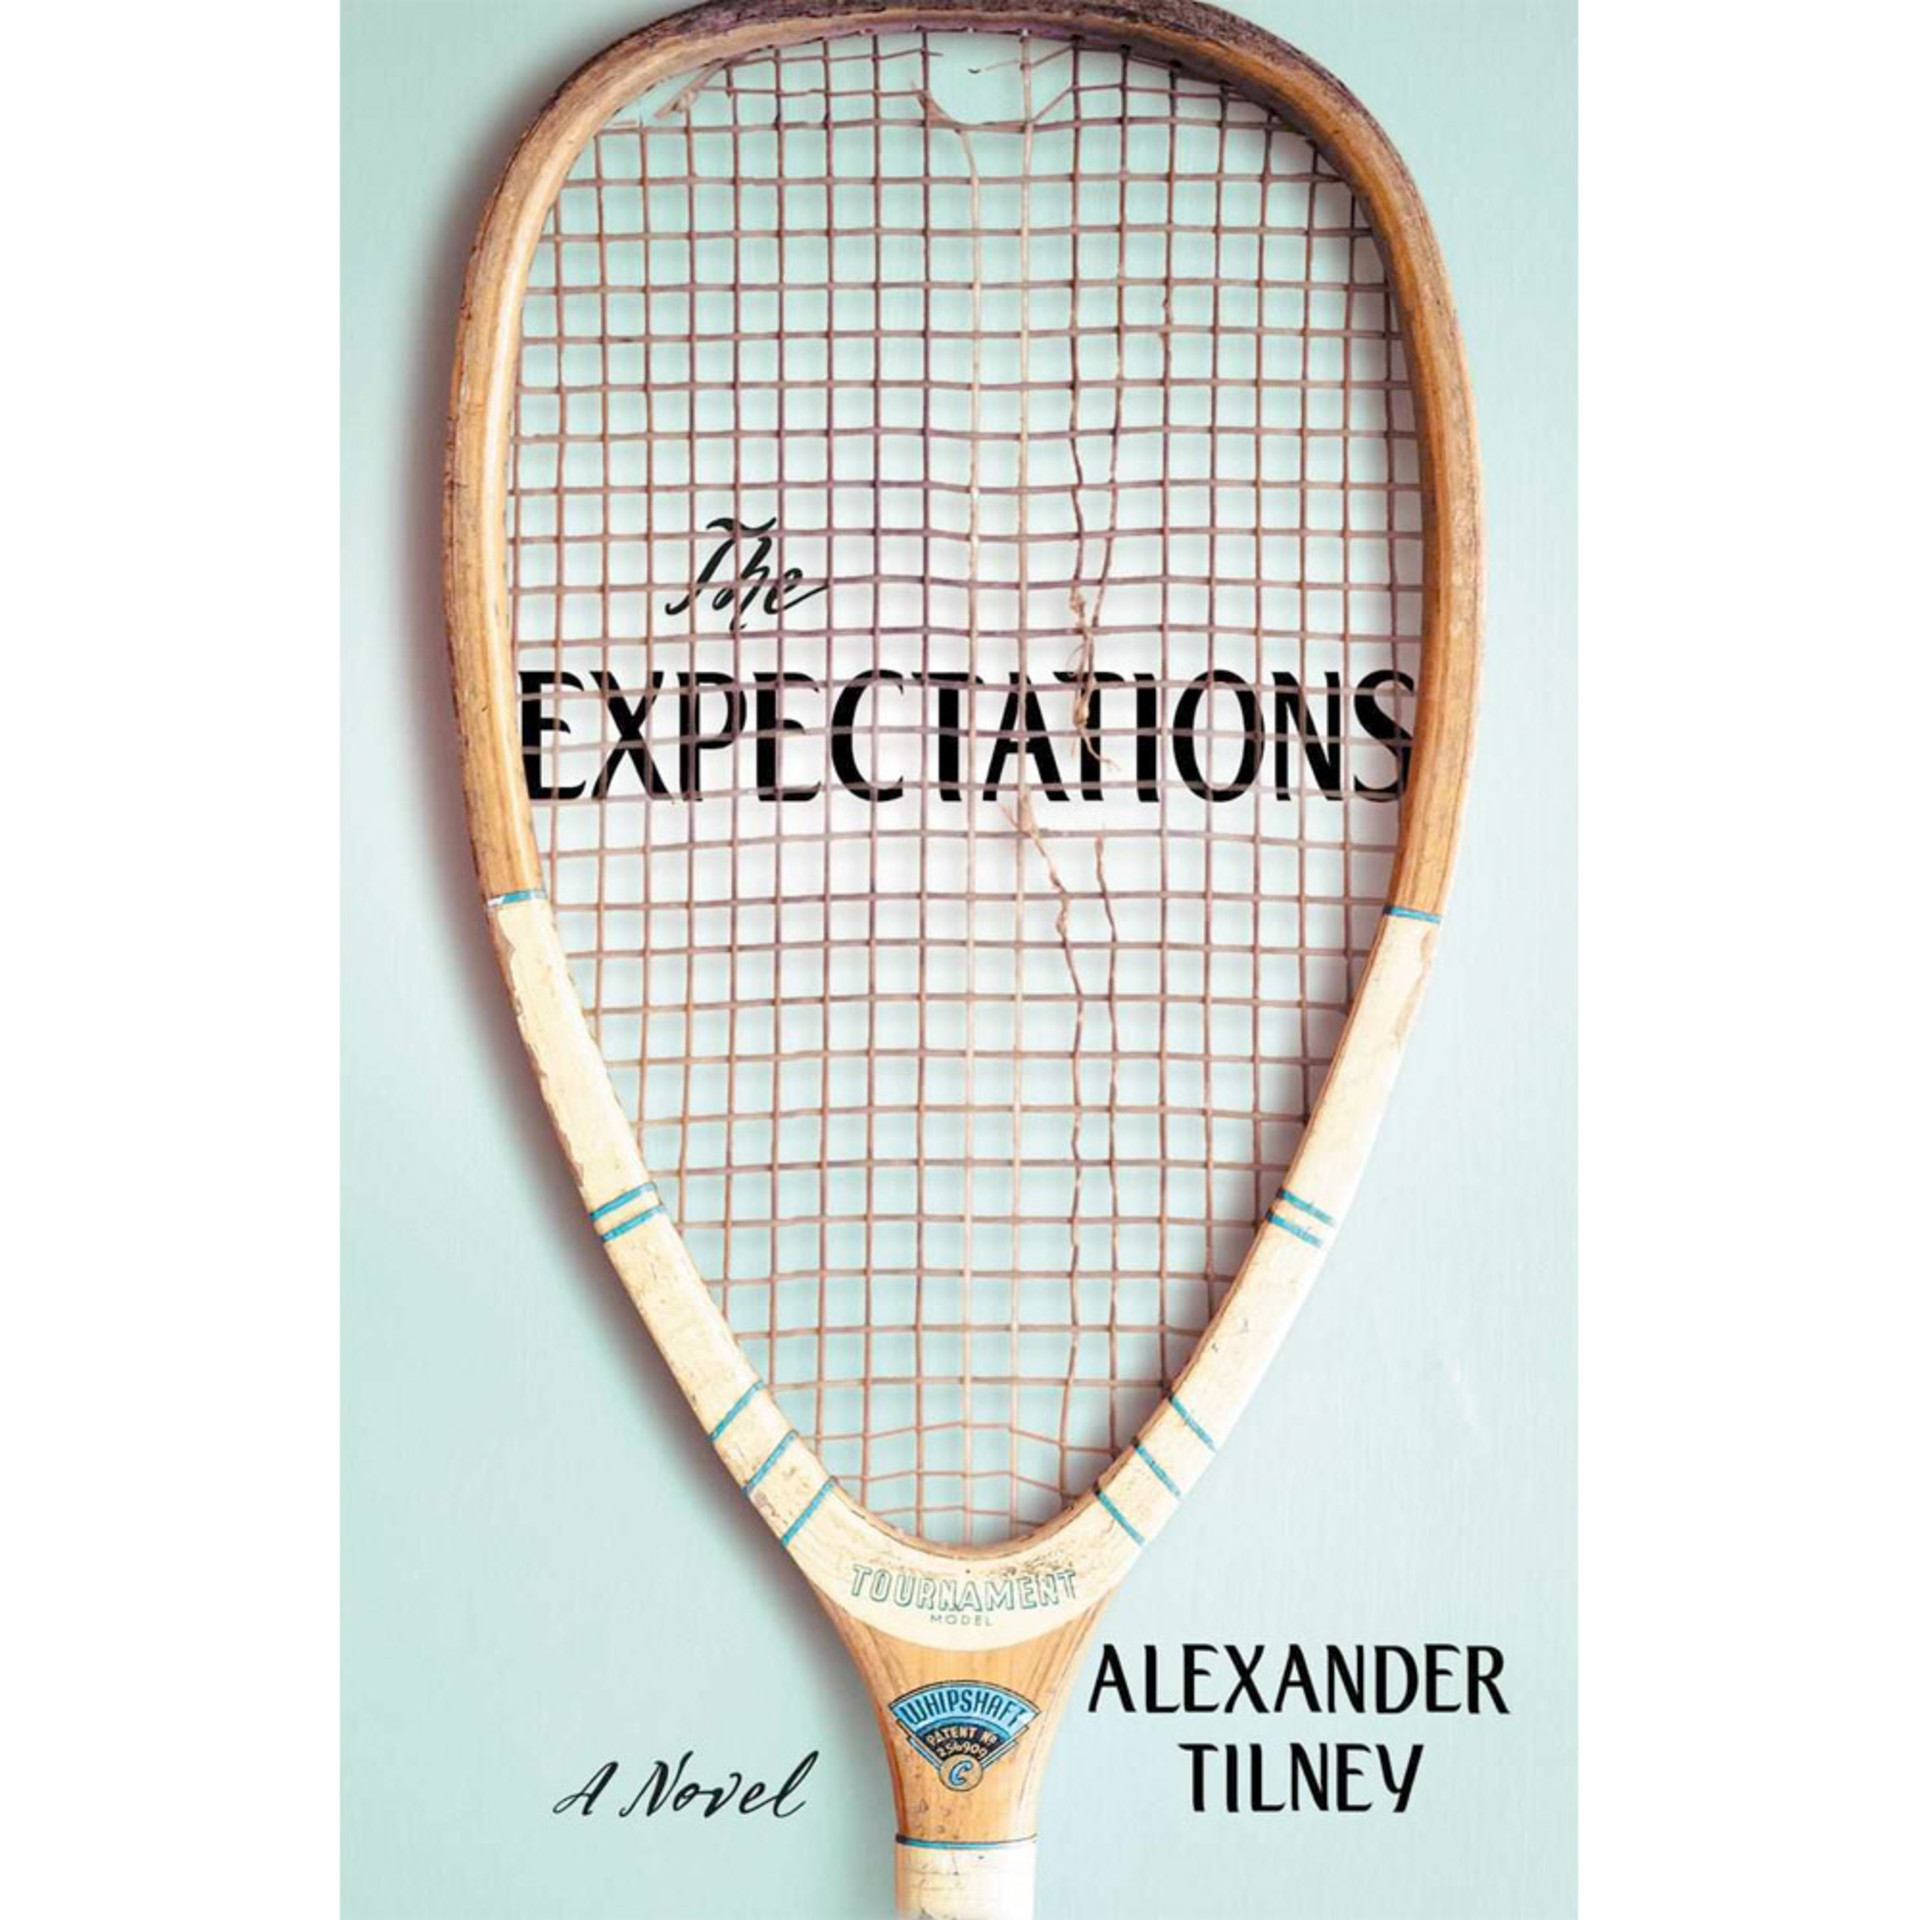 The Expectations by Alexander Tilney